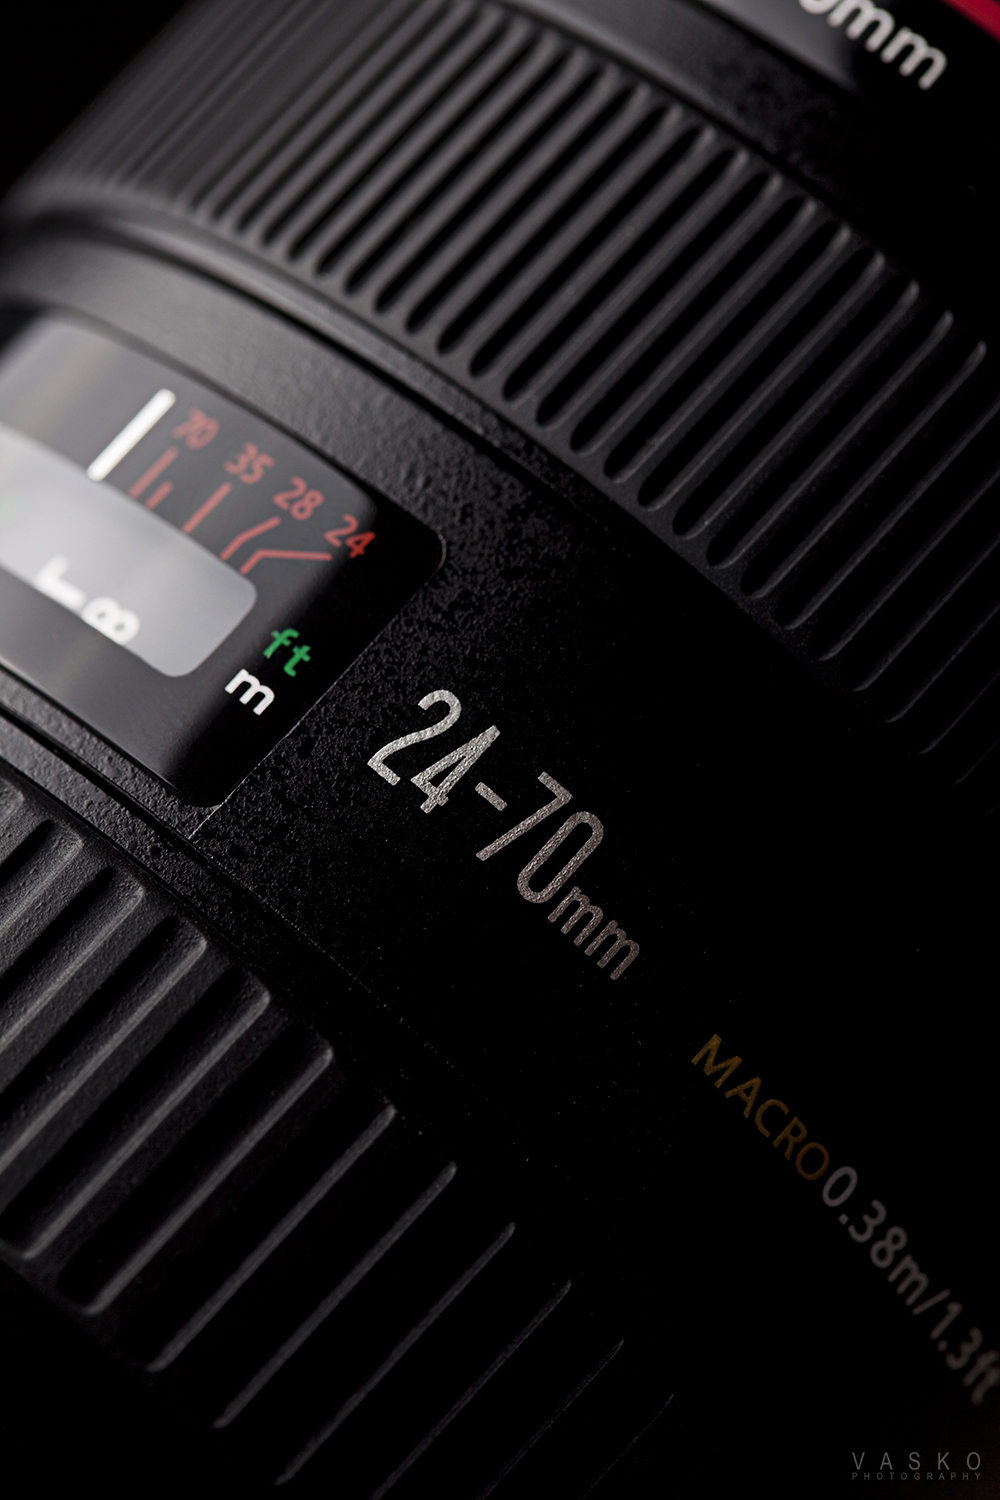 Canon 24-70mm f2.8L USM - Vasko Photography